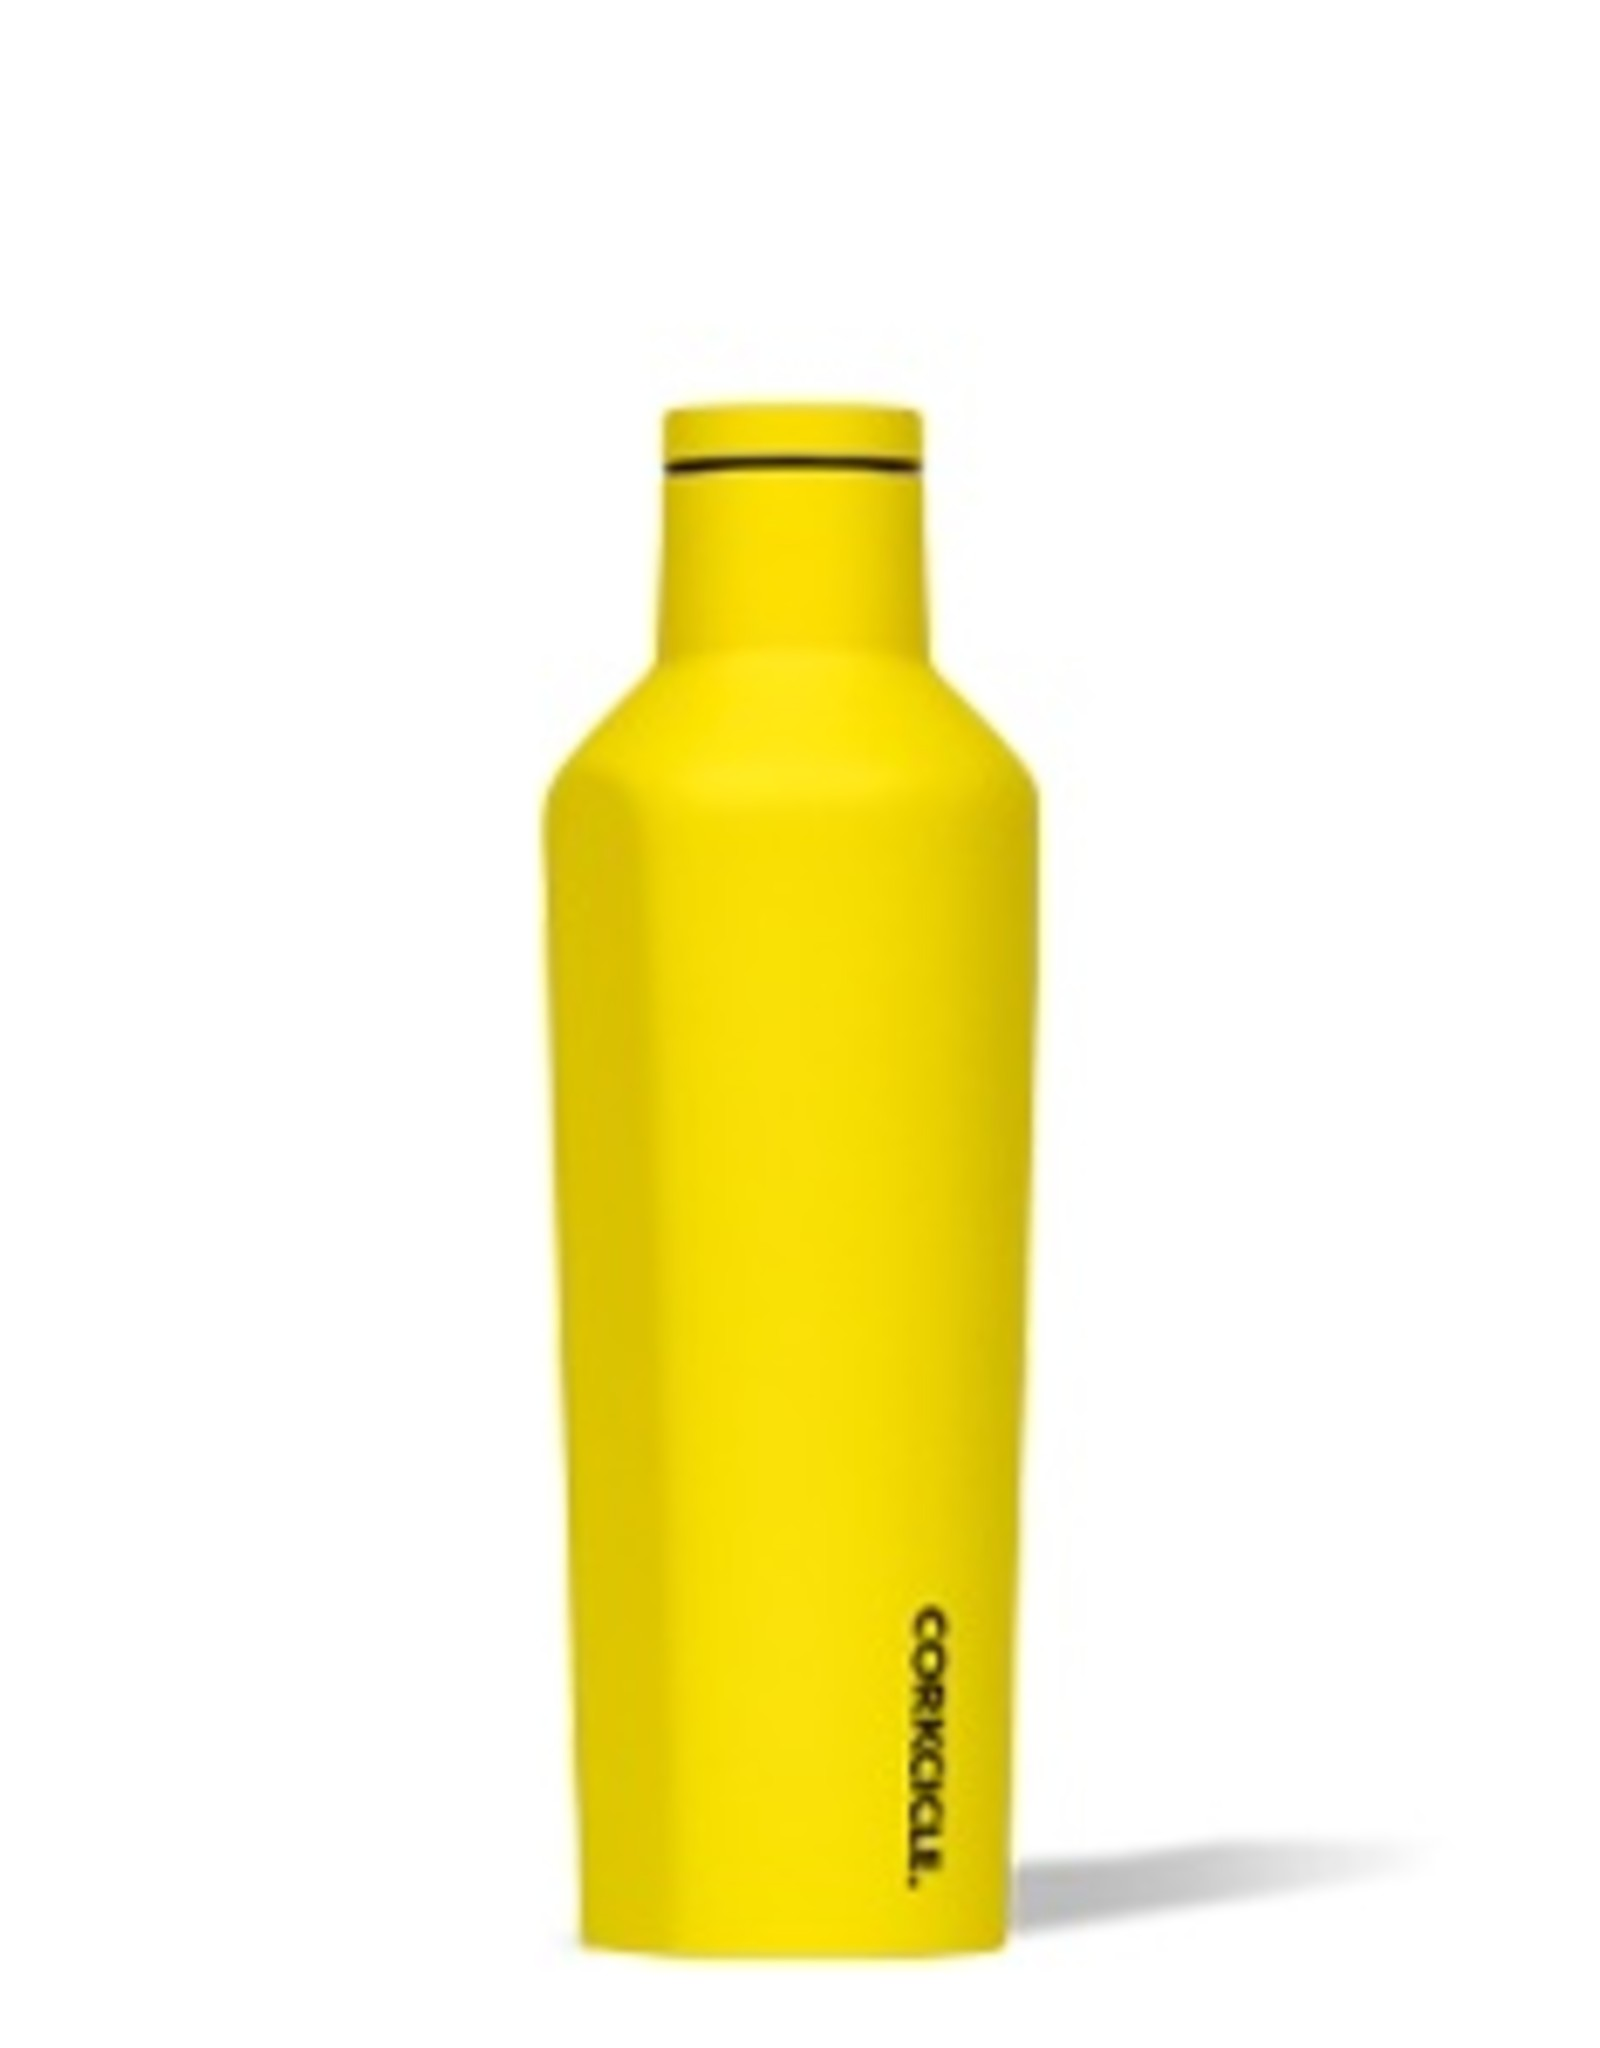 Corkcicle Corkcicle - CANTEEN - Neon Yellow - 16oz